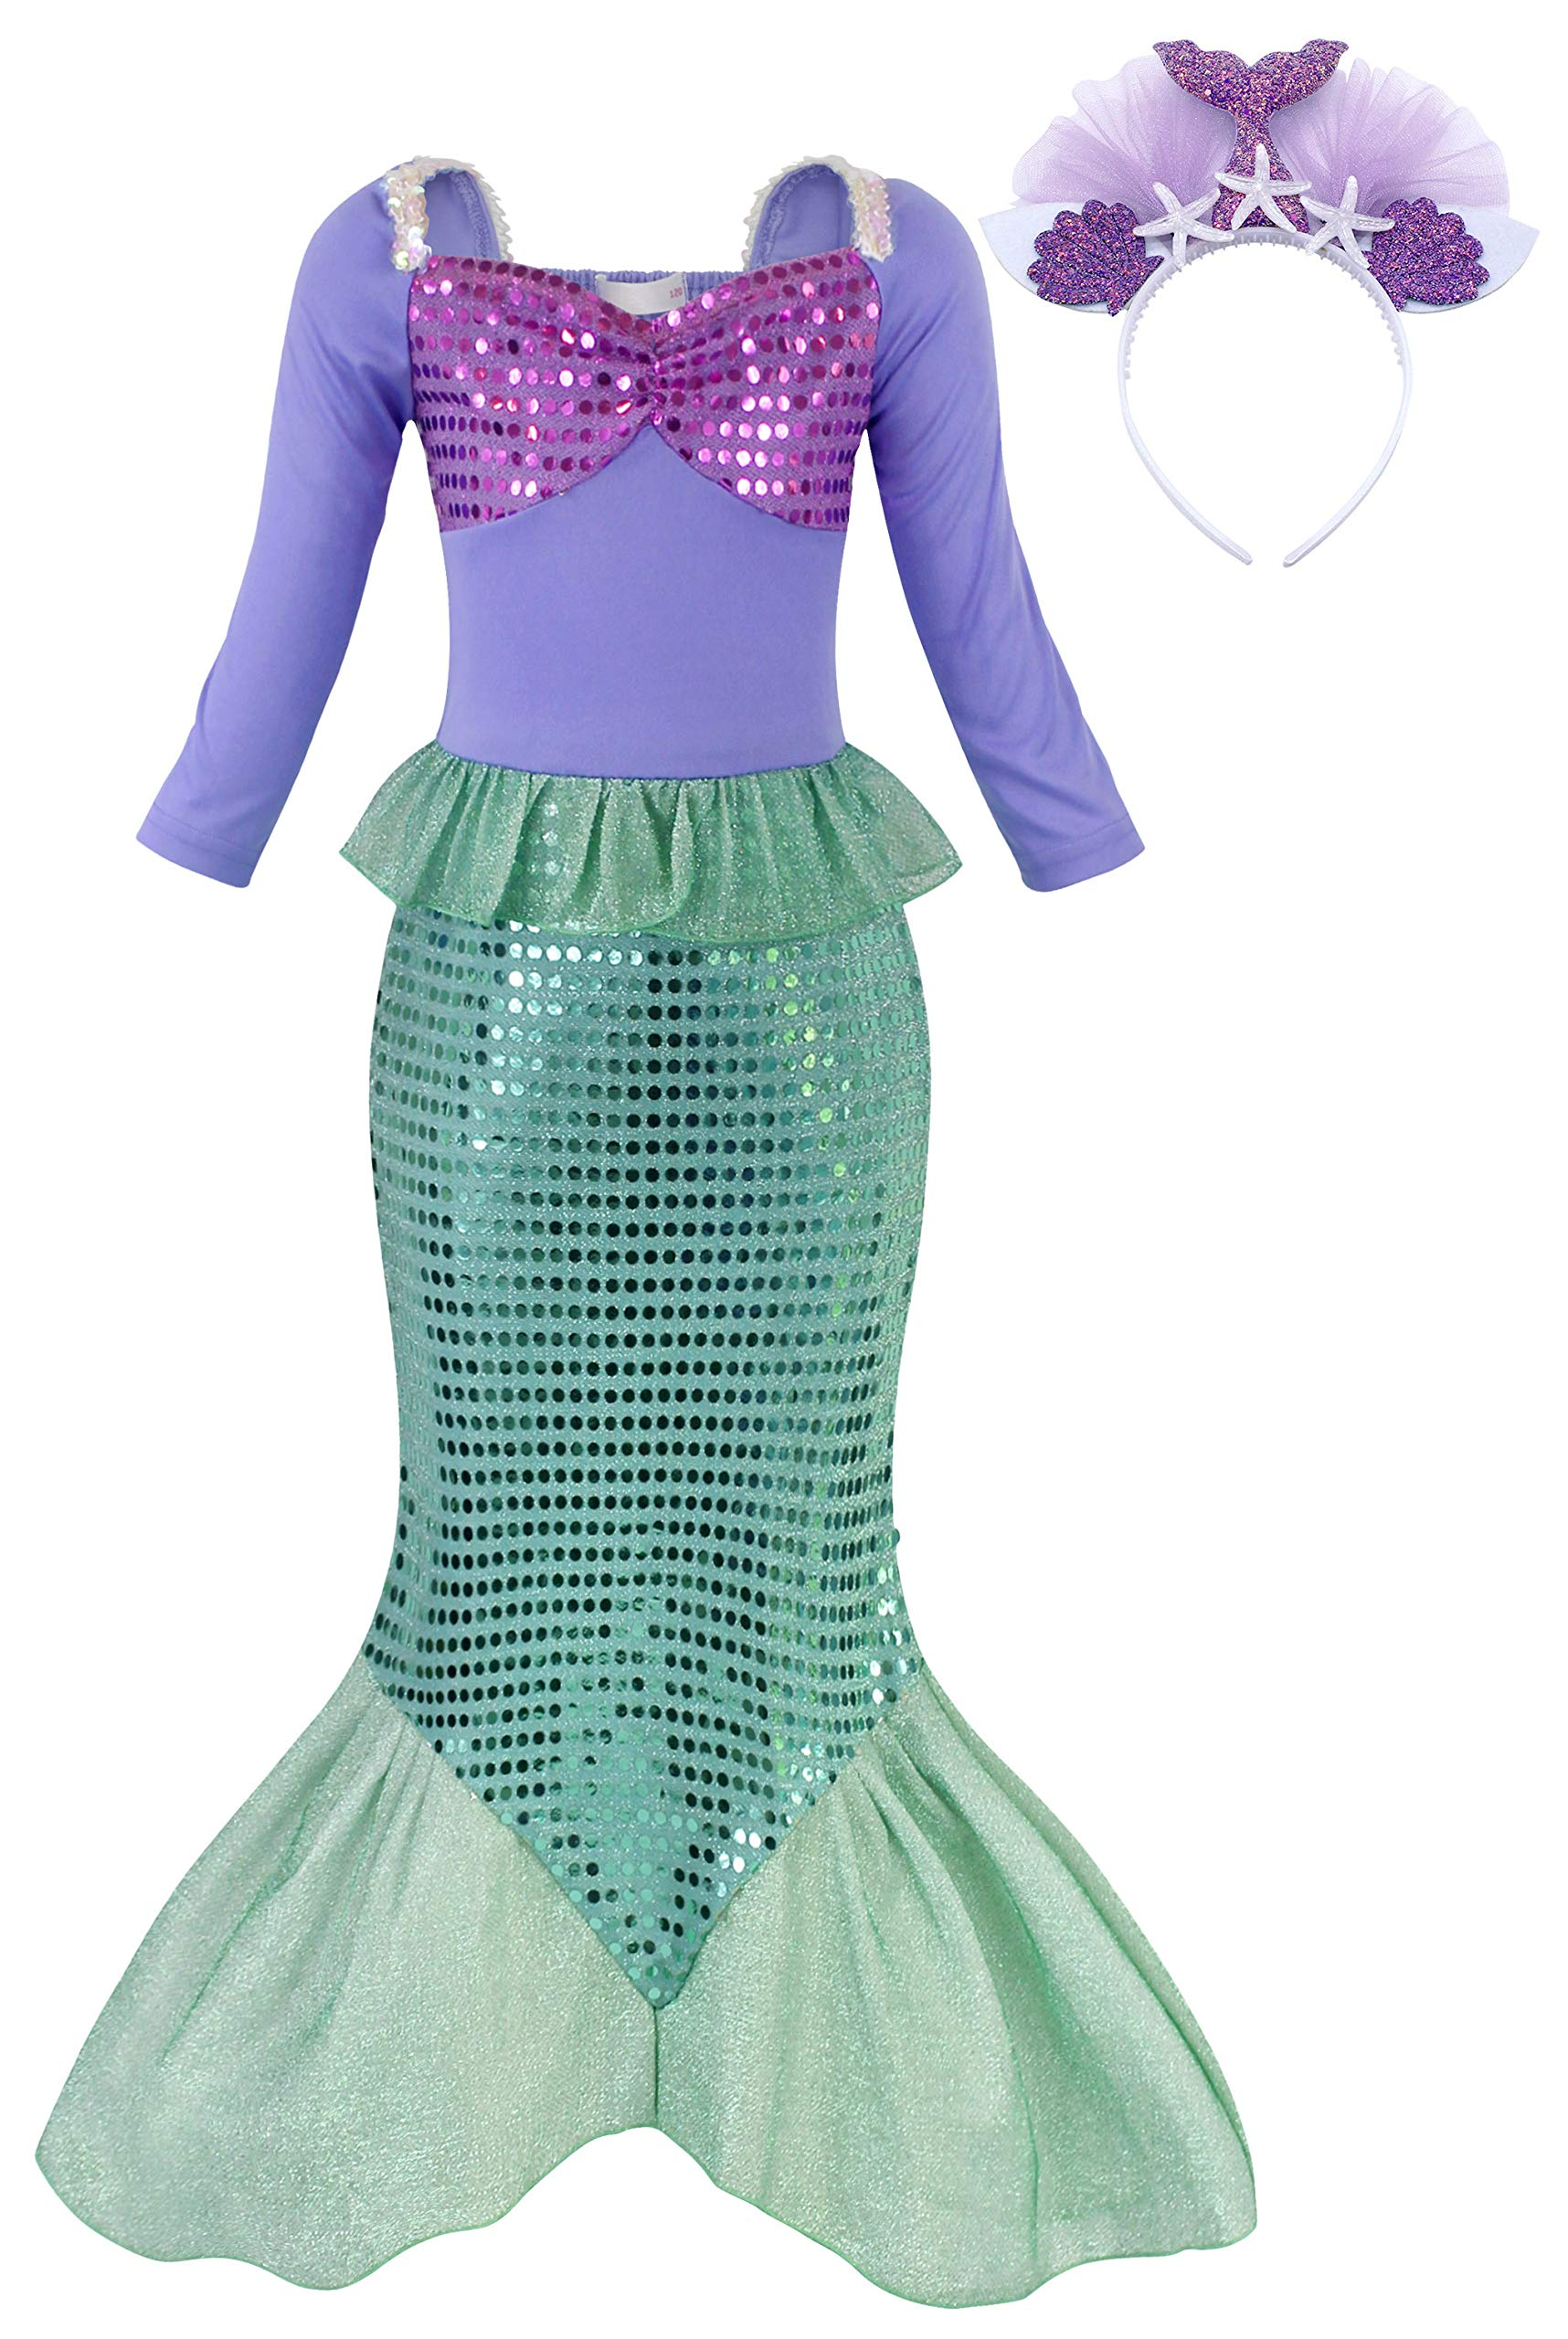 HenzWorld Little Girls Clothes Mermaid Tails Costume Dresses Princess Birthday Party Cosplay Accessories Headband Sequins